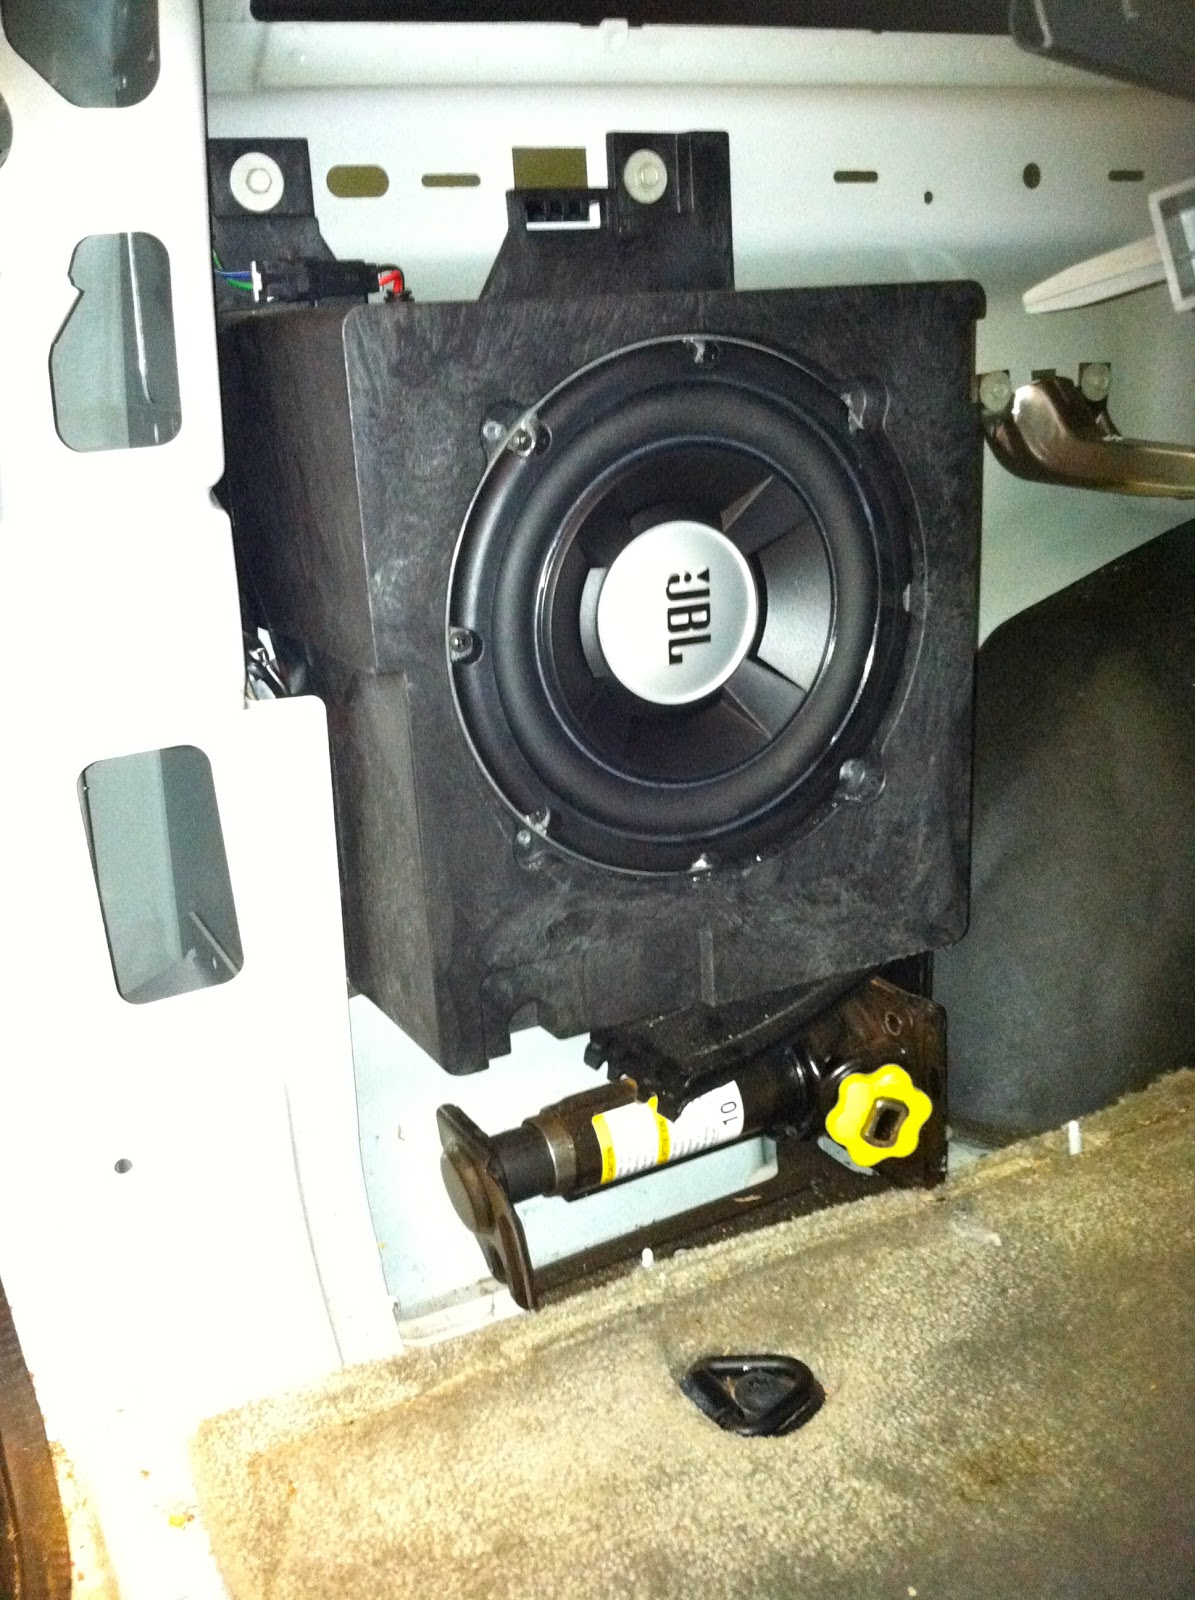 Bose Subwoofer Box Design >> Car Audio Tips Tricks and How To's : 2000-2006 Chevy Tahoe Factory Sub Upgrade, JBL 8 inch.